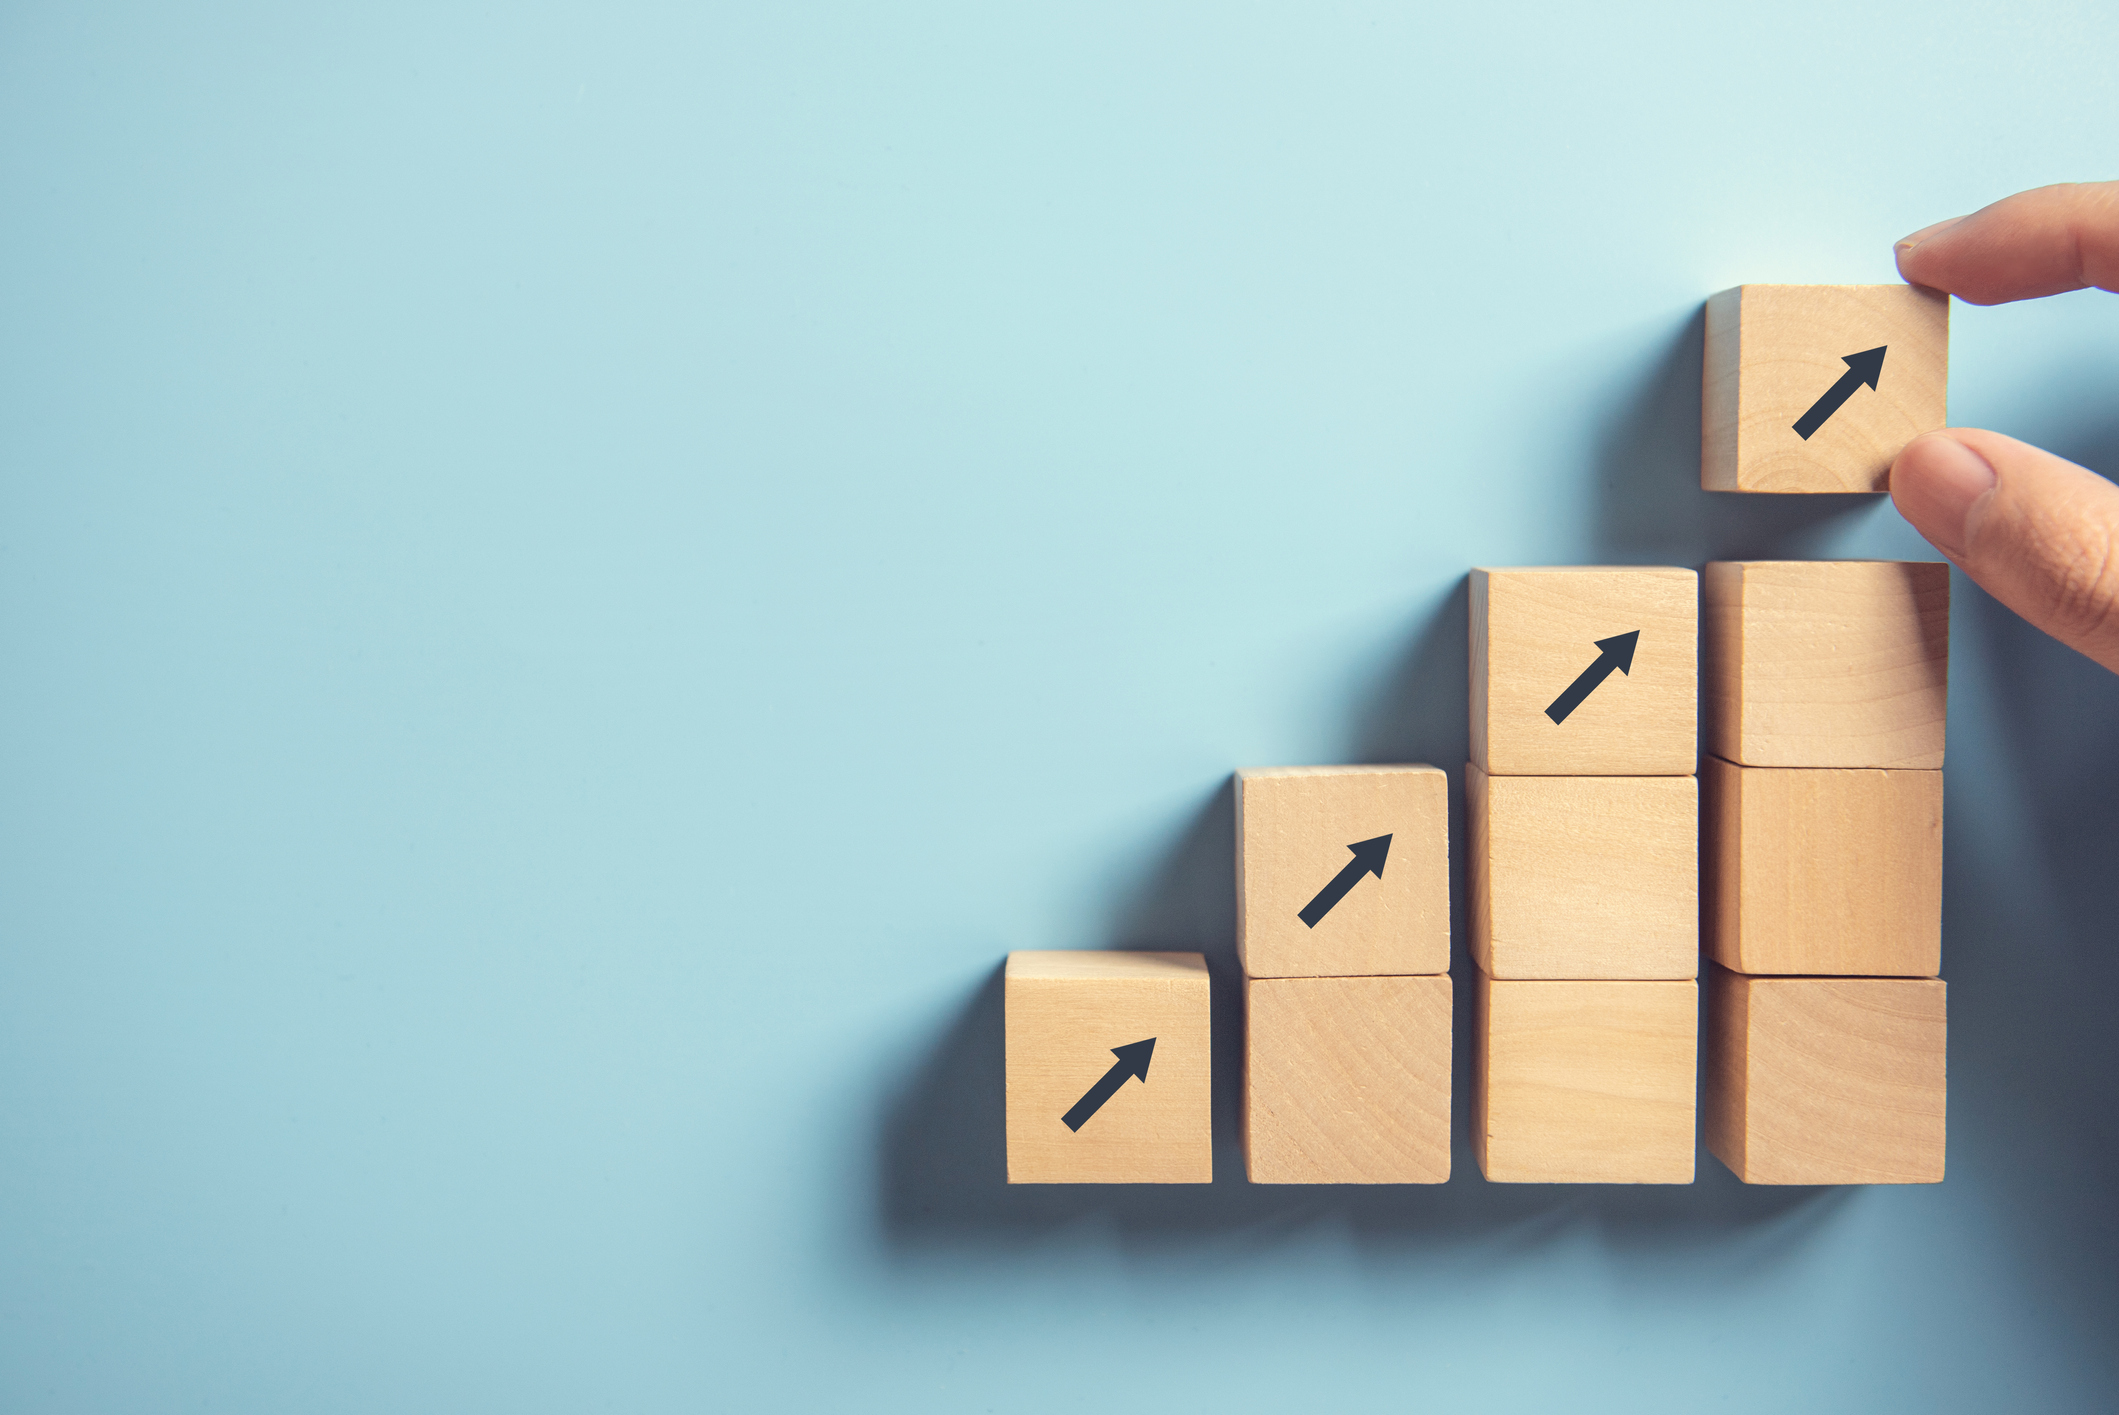 Growing your business? 7 Scale-up tips